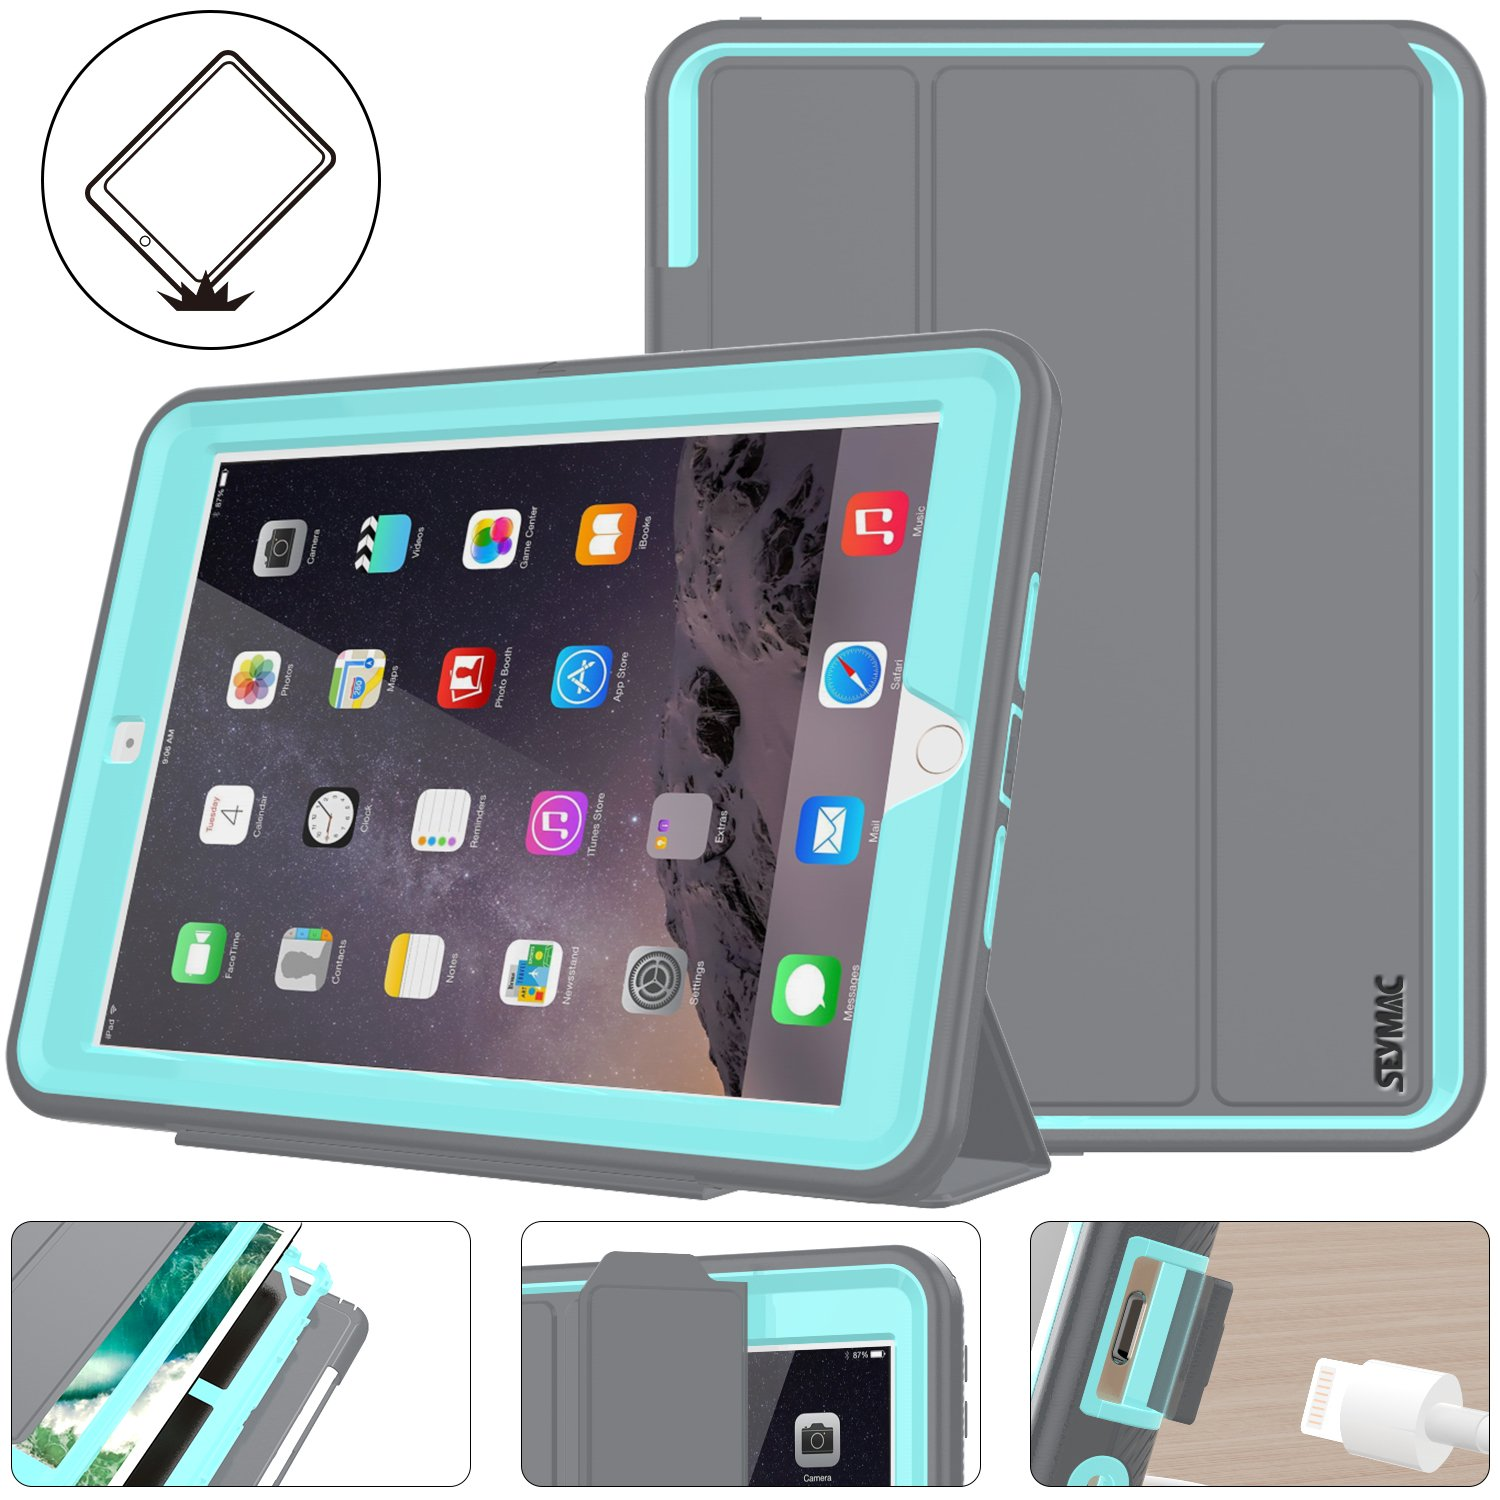 iPad 5th/6th Generation Case, New iPad 9.7 Inch 2017/2018 Case Smart Magnetic Auto Sleep/Wake Cover Hybrid Leather with Stand Feature for Apple New iPad 2017 Release Model (Gray/Skyblue)